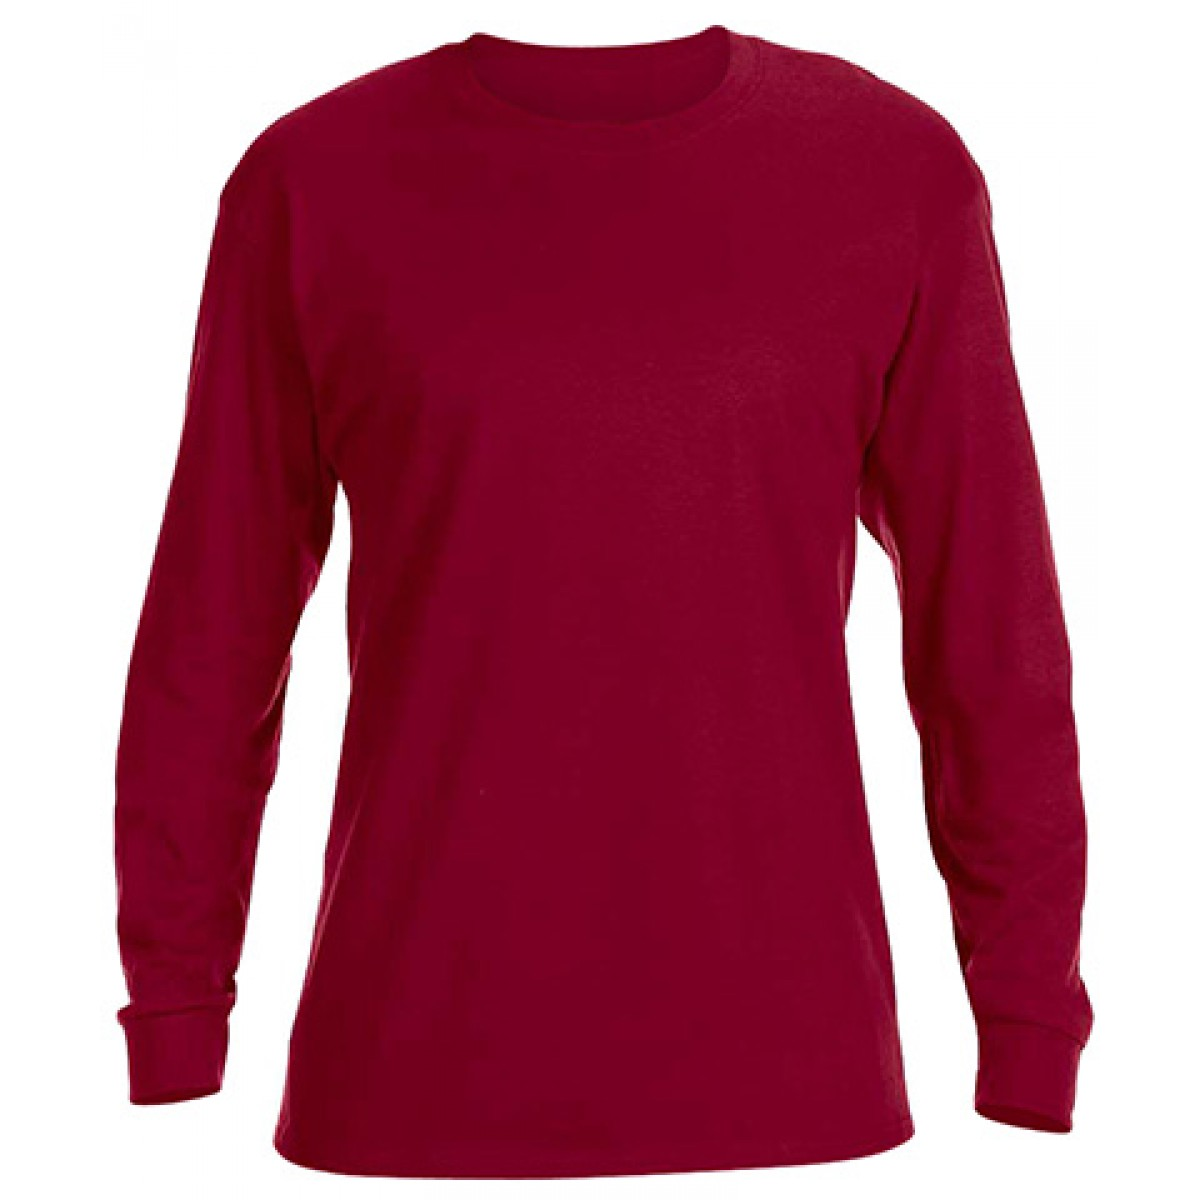 Heavy Cotton Long-Sleeve Adidas Shirt-Red-S